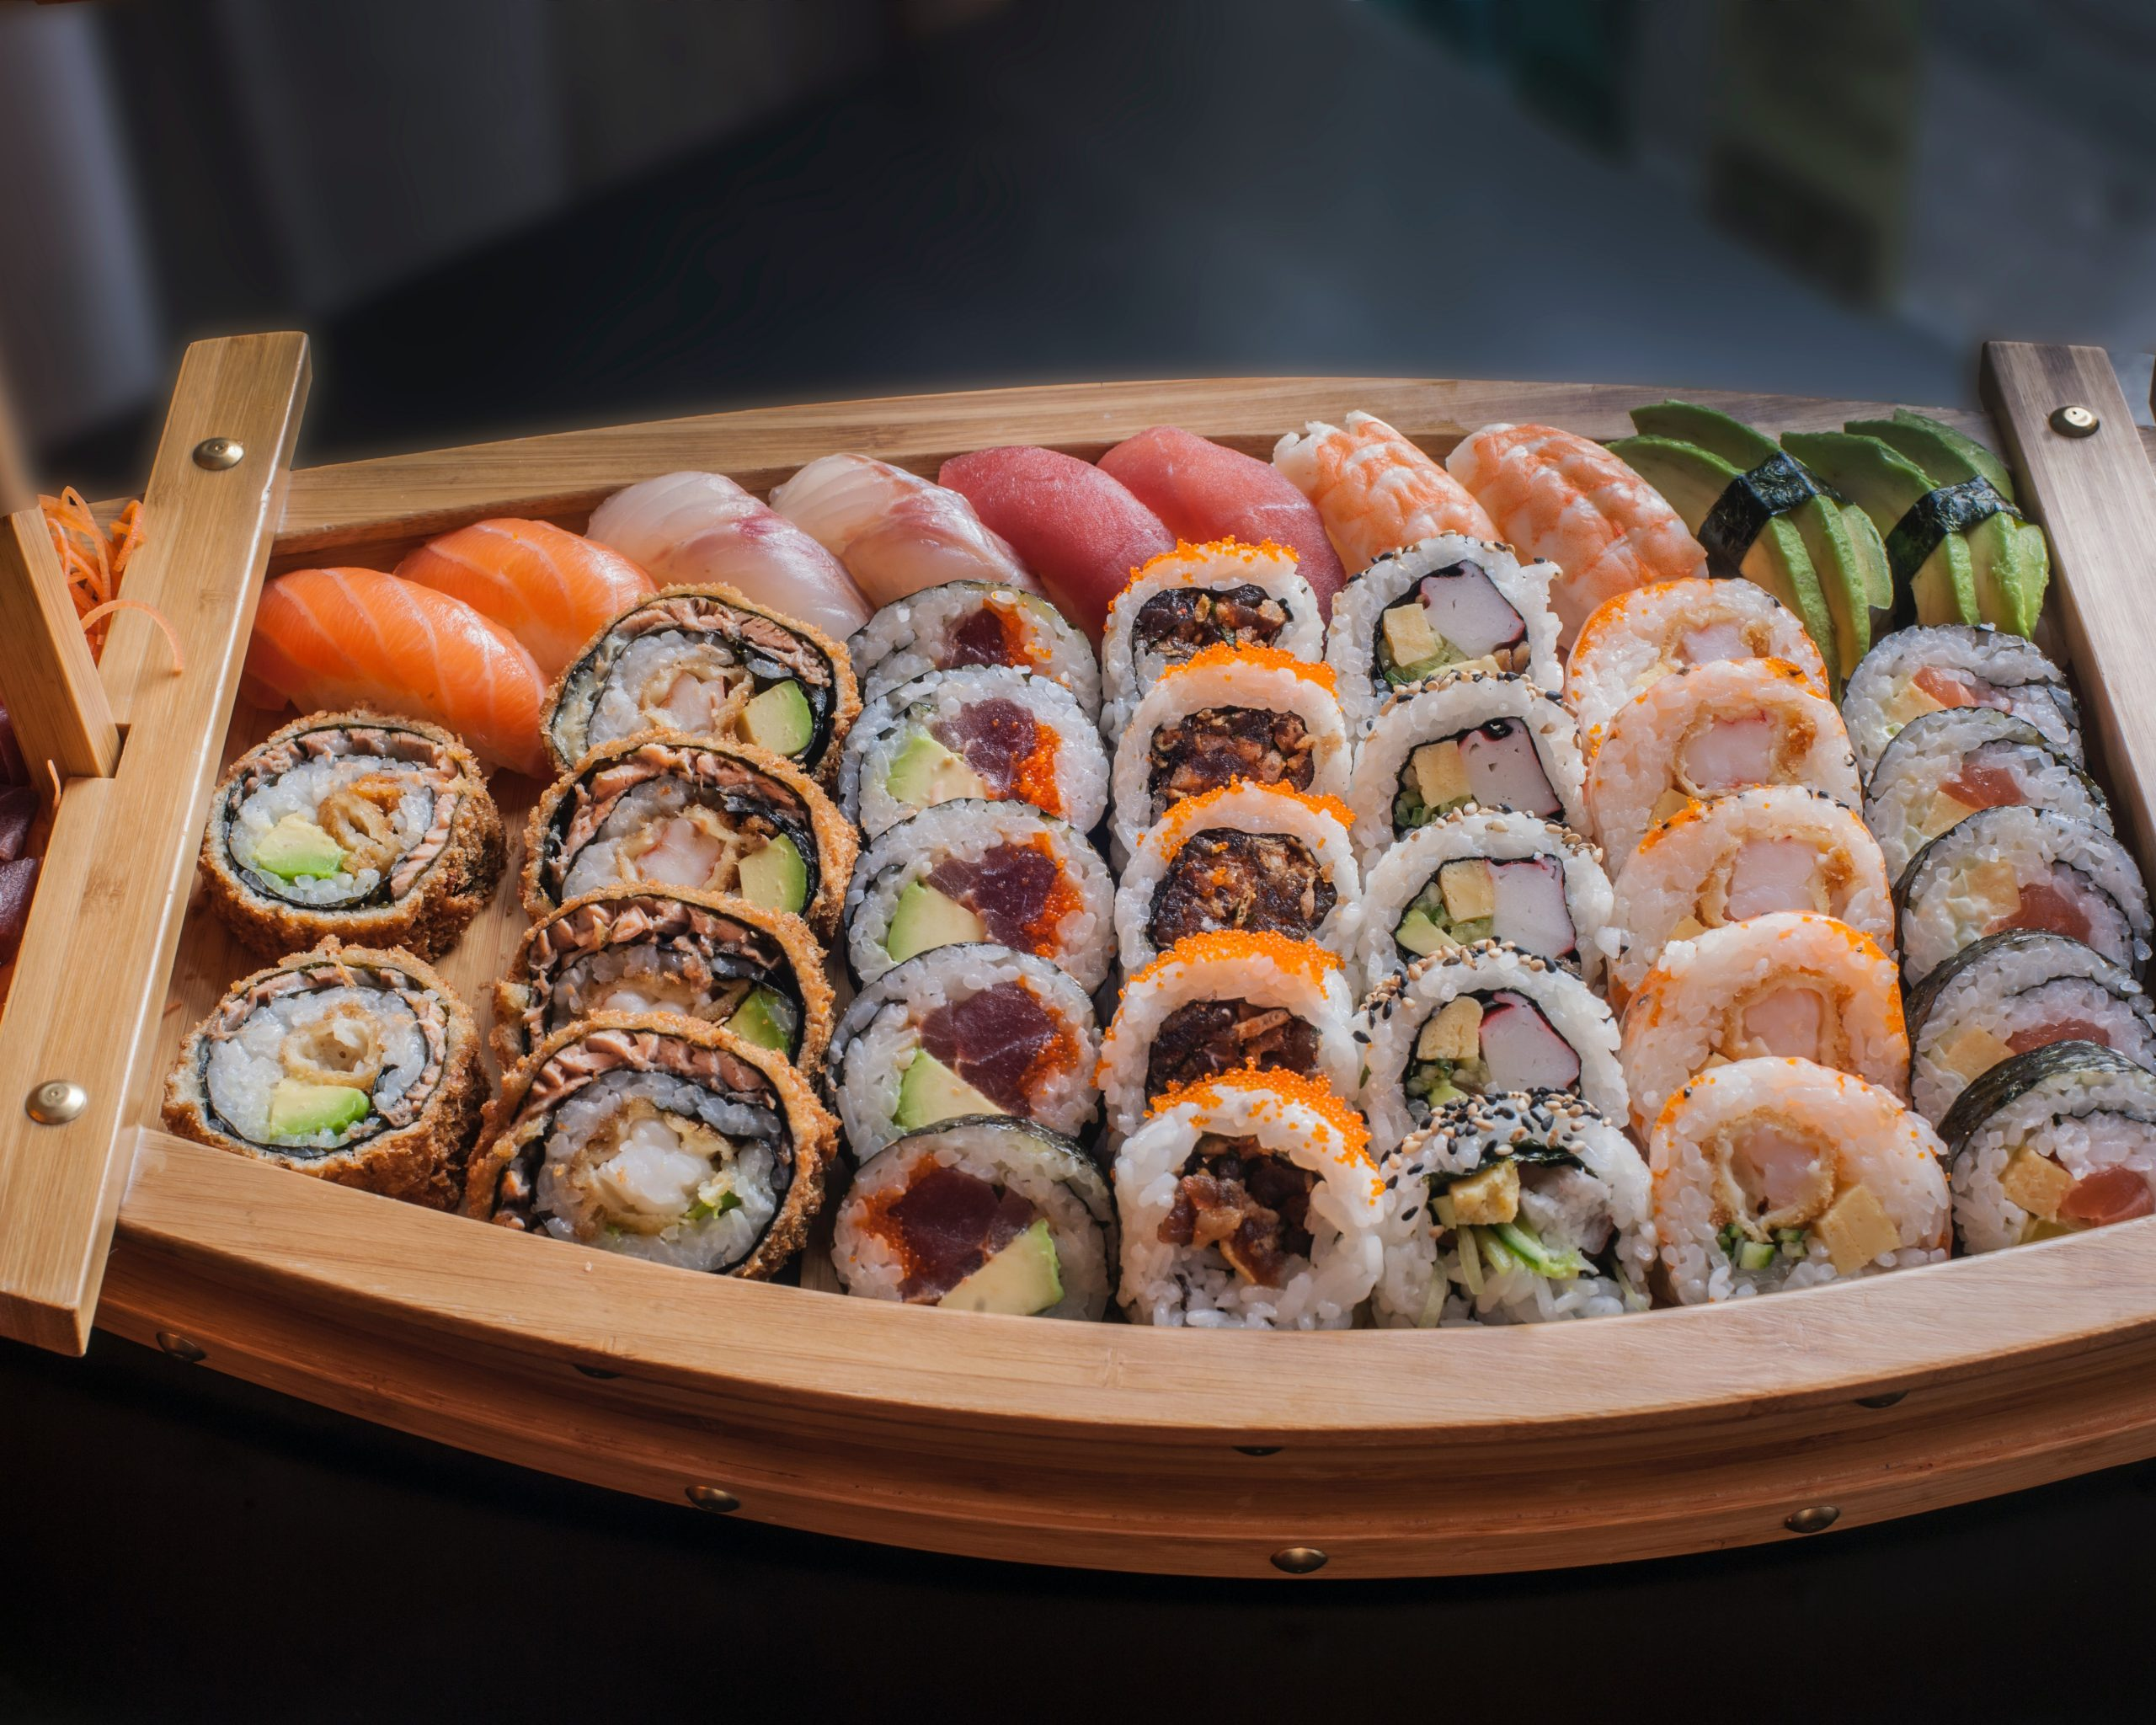 a variety of sushi in a small boat like platter